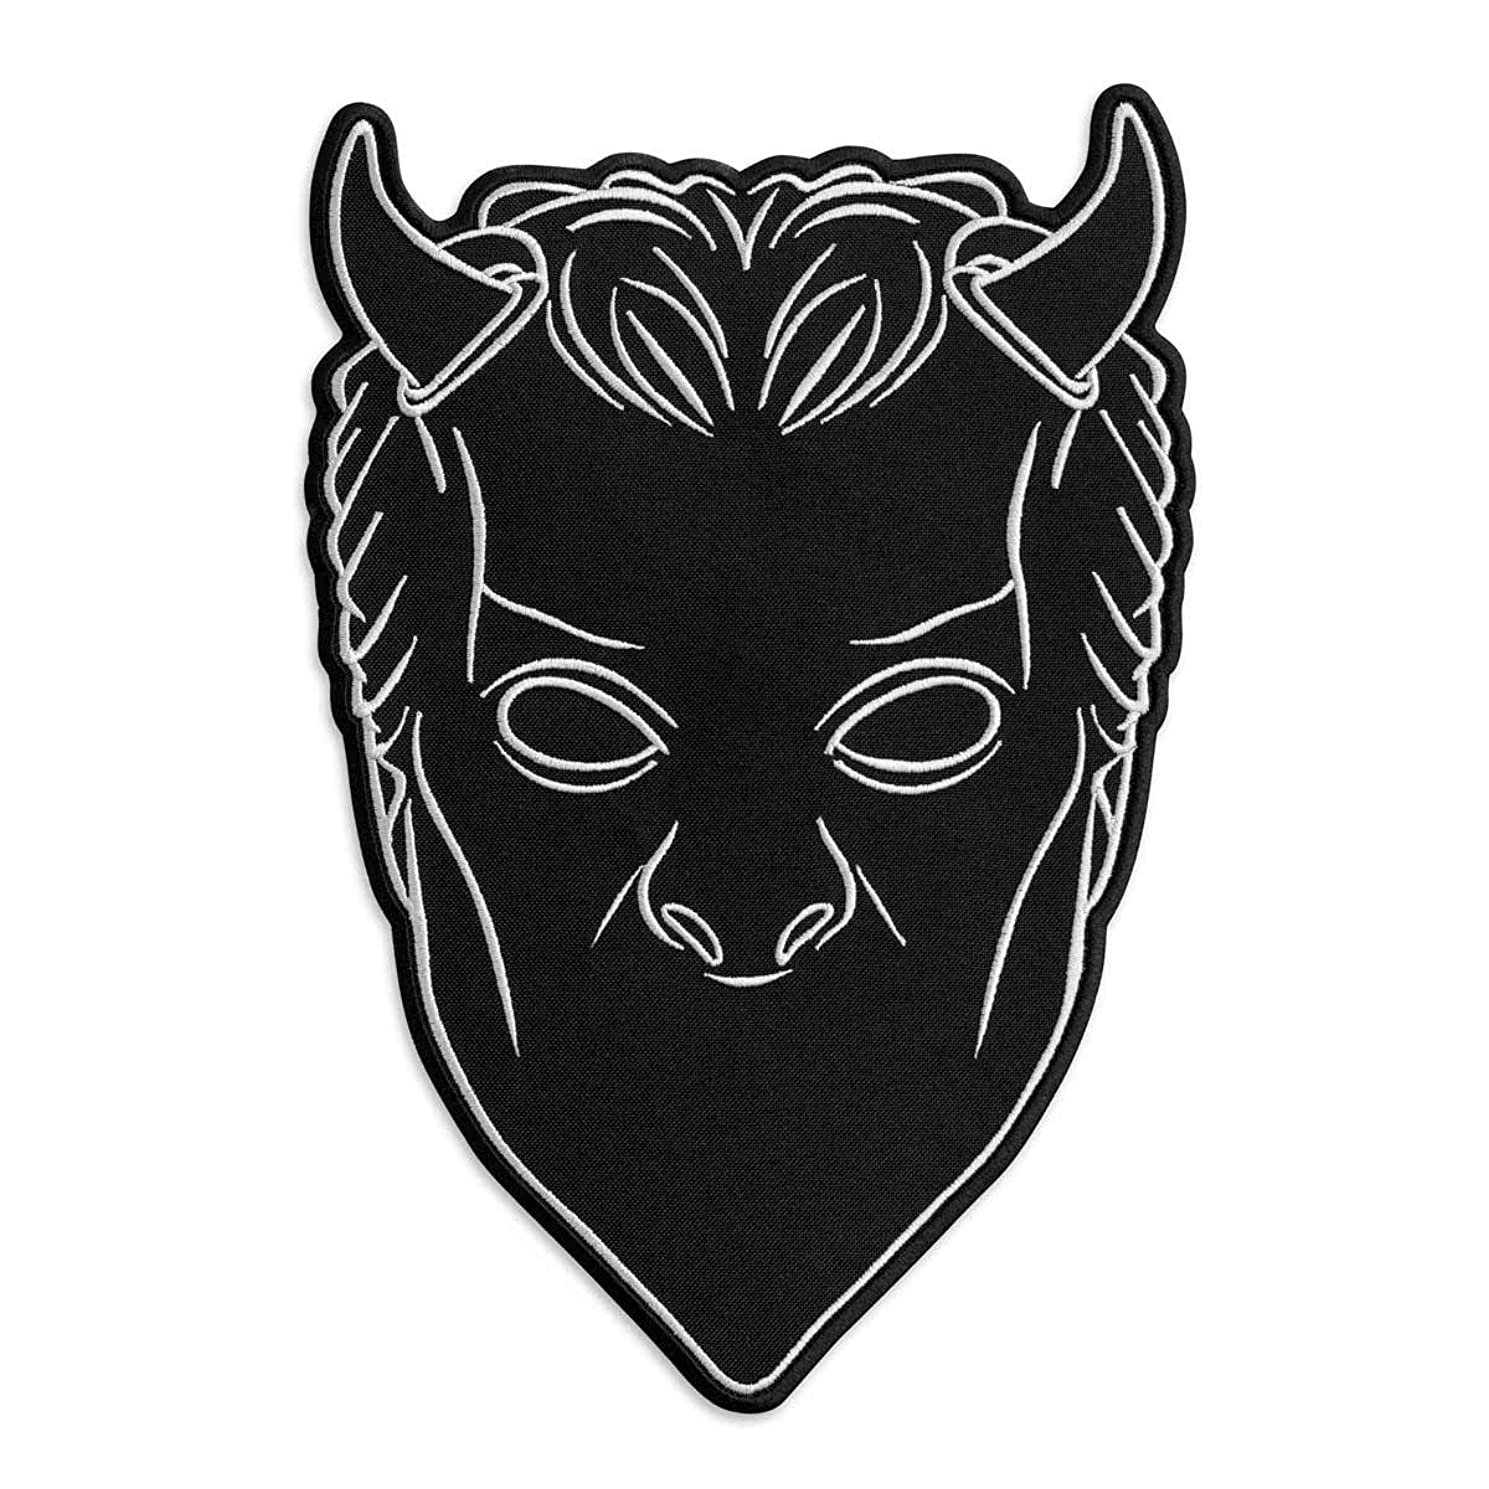 Ghost BC Nameless Ghouls Black Mask Heavy Metal Doom Hard Rock Band Embroidered Patch Iron On (2.7